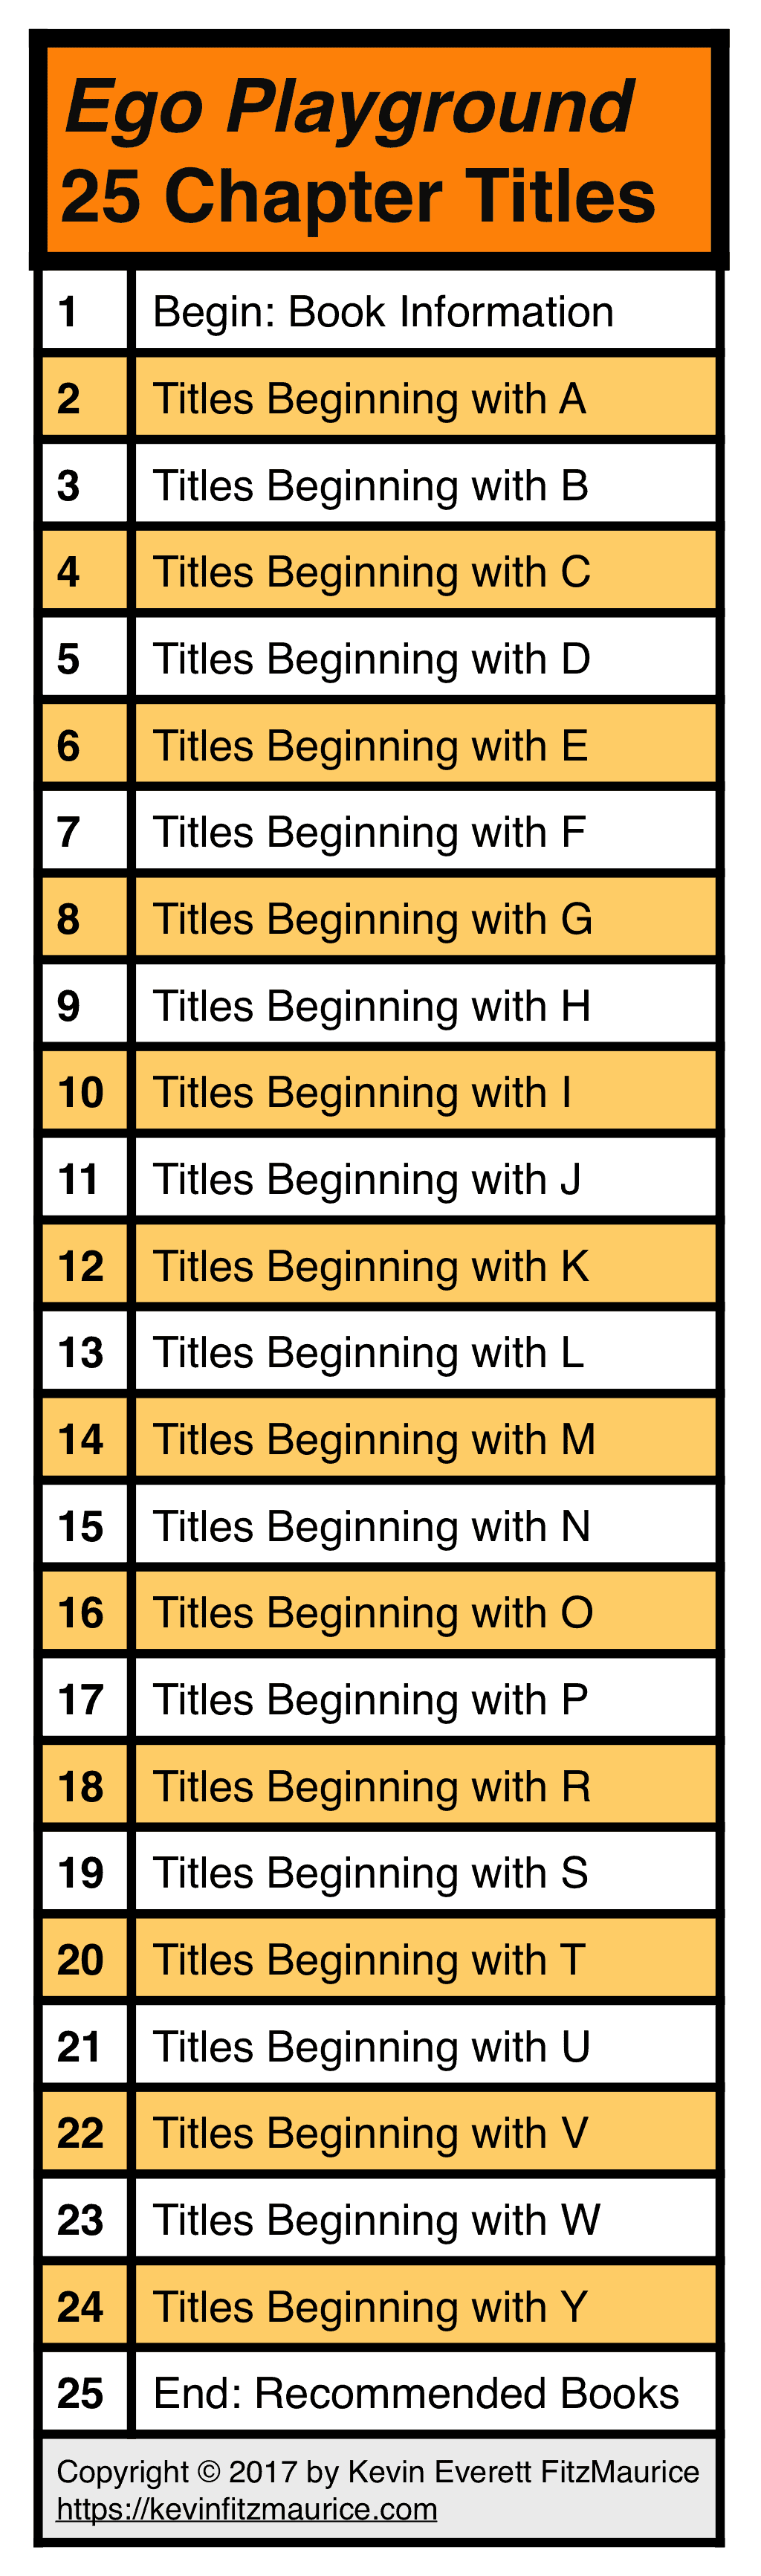 Ego Playground 25 Chapter Titles